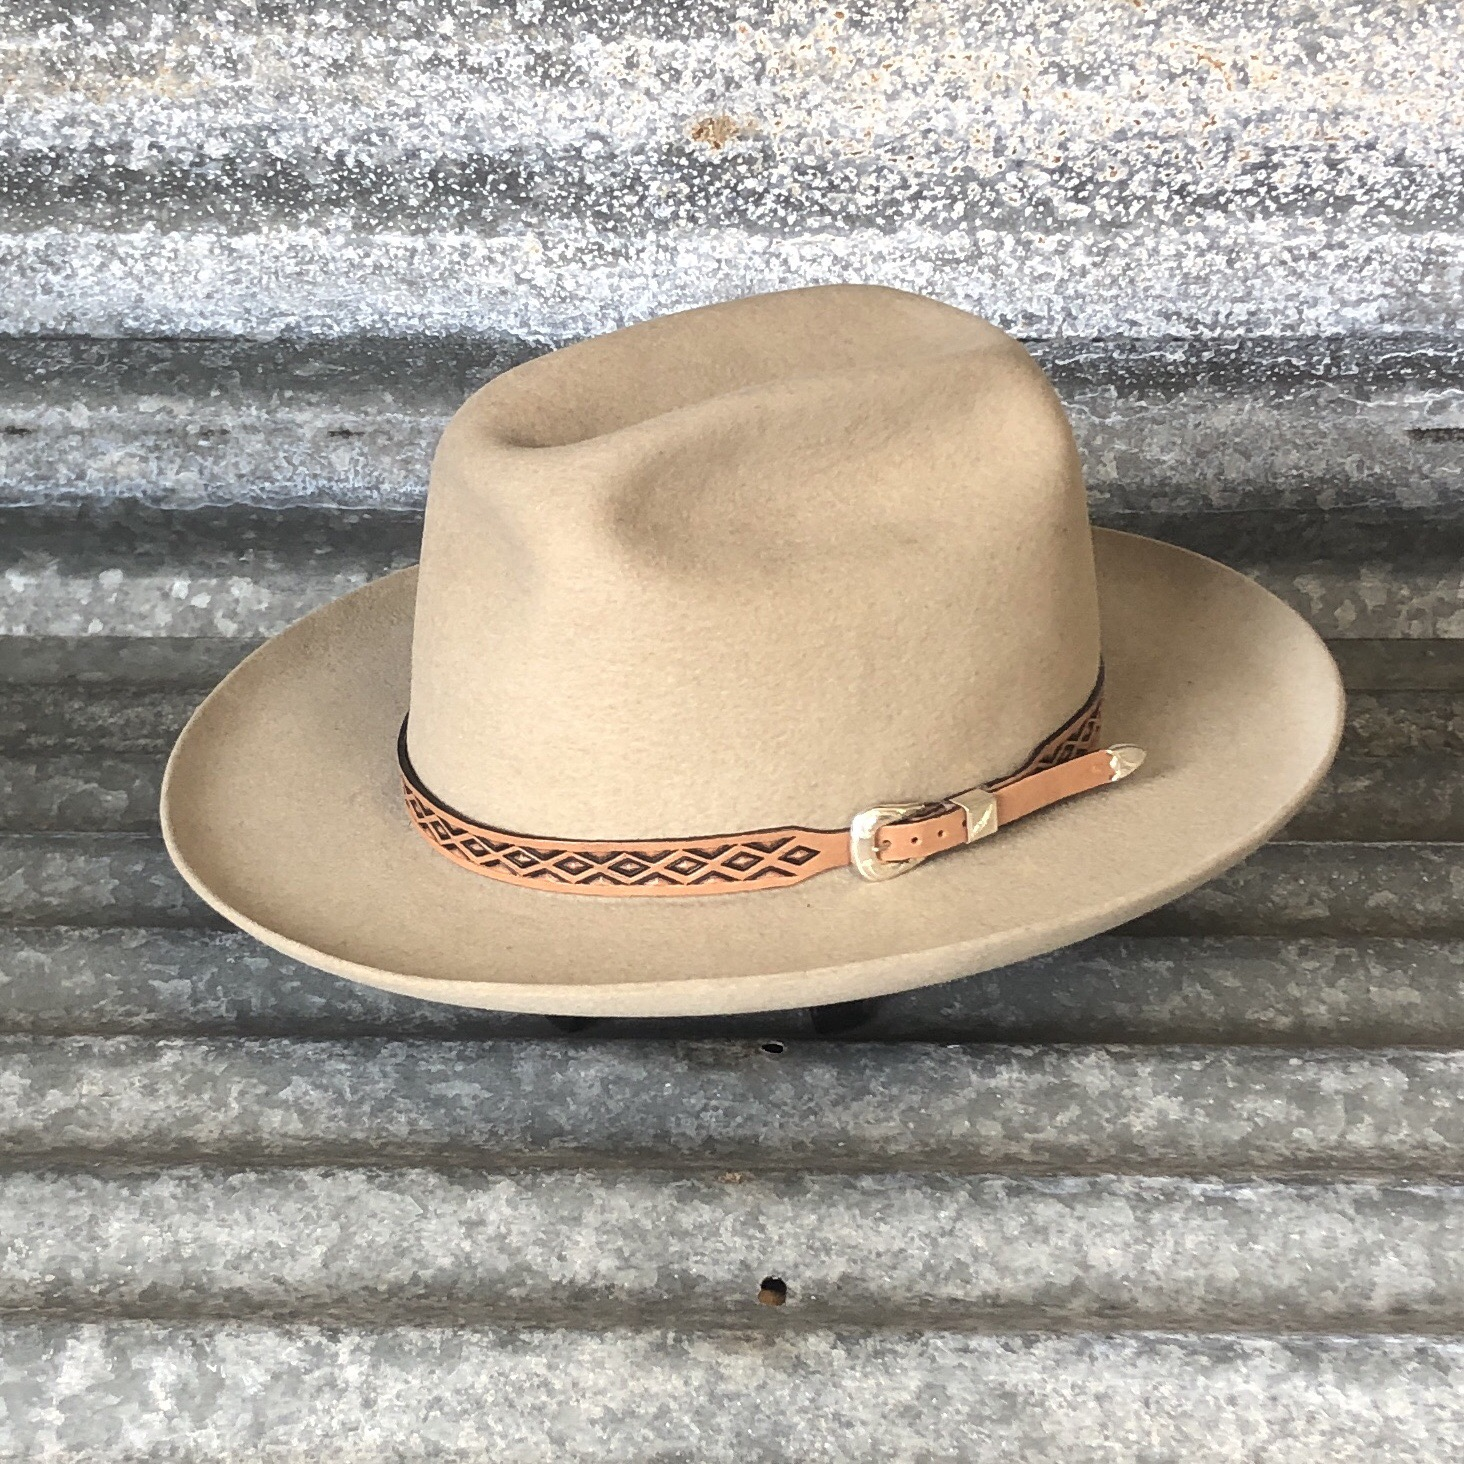 CHAMPAGNE COWBOY WITH MULE KICKS/FULL CURL